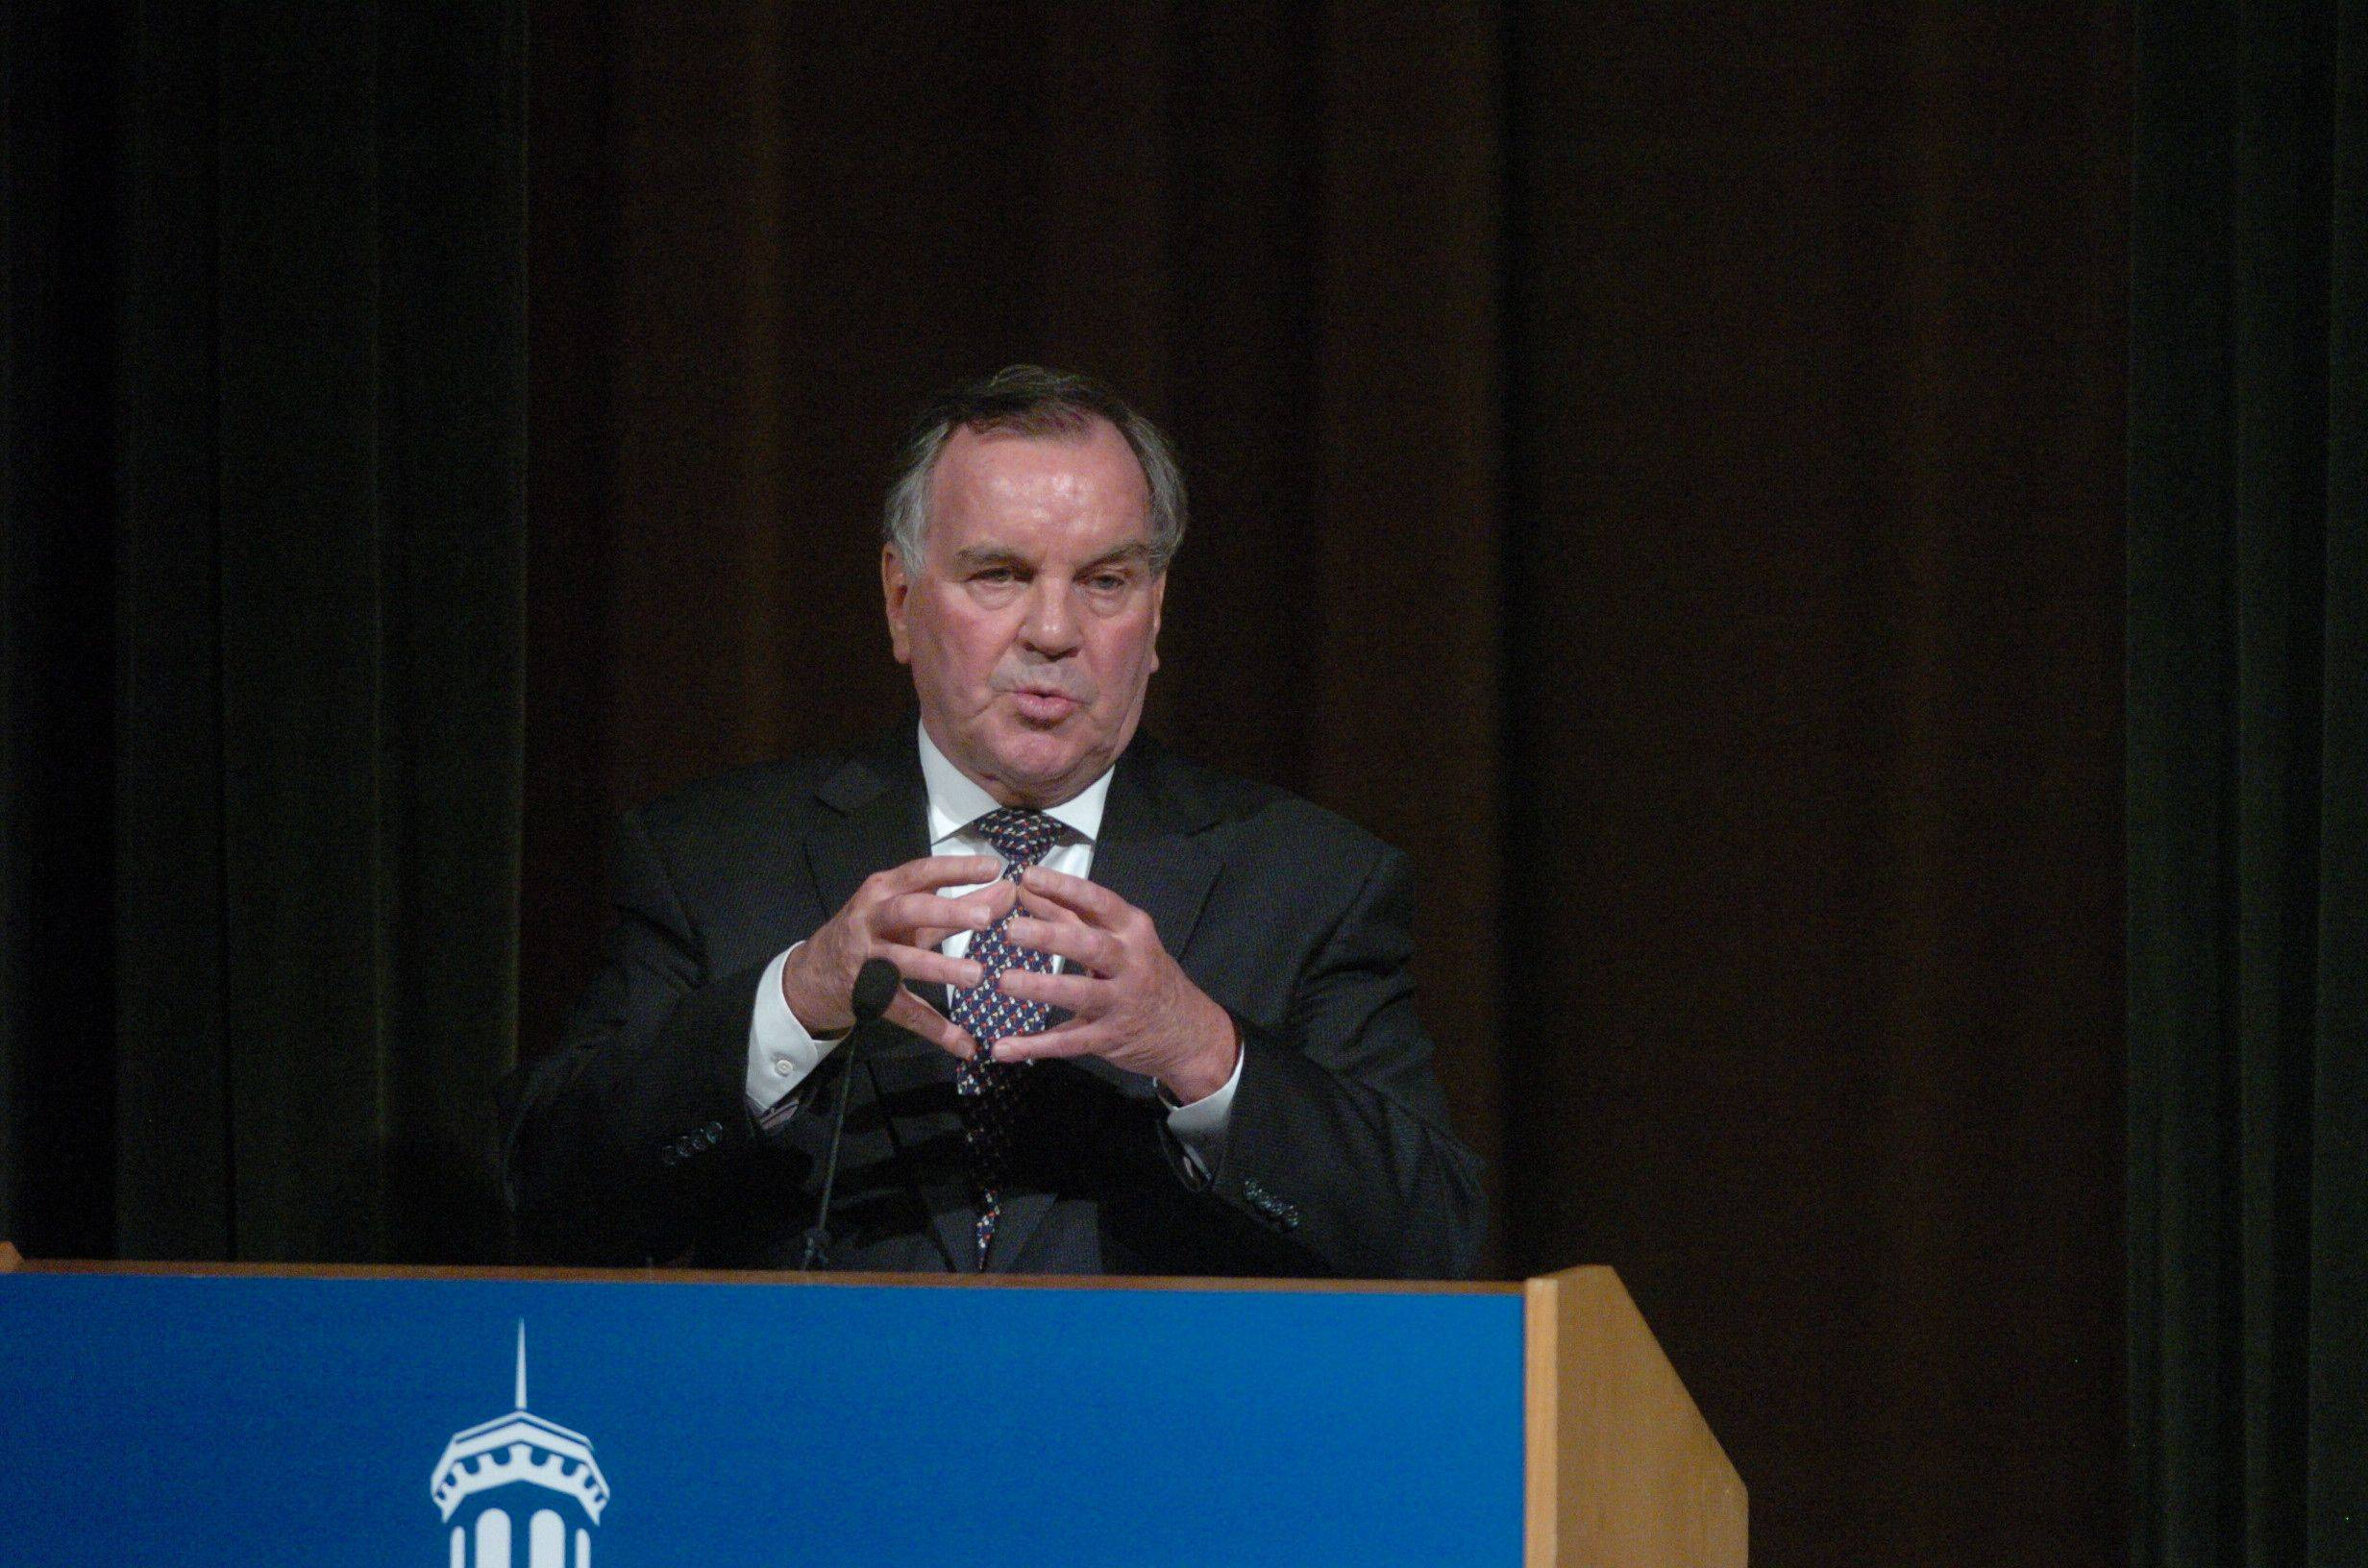 """We have to have confidence that we can compete with people if we all sacrifice a little bit for the common good,"" Richard Daley told Wheaton College students."